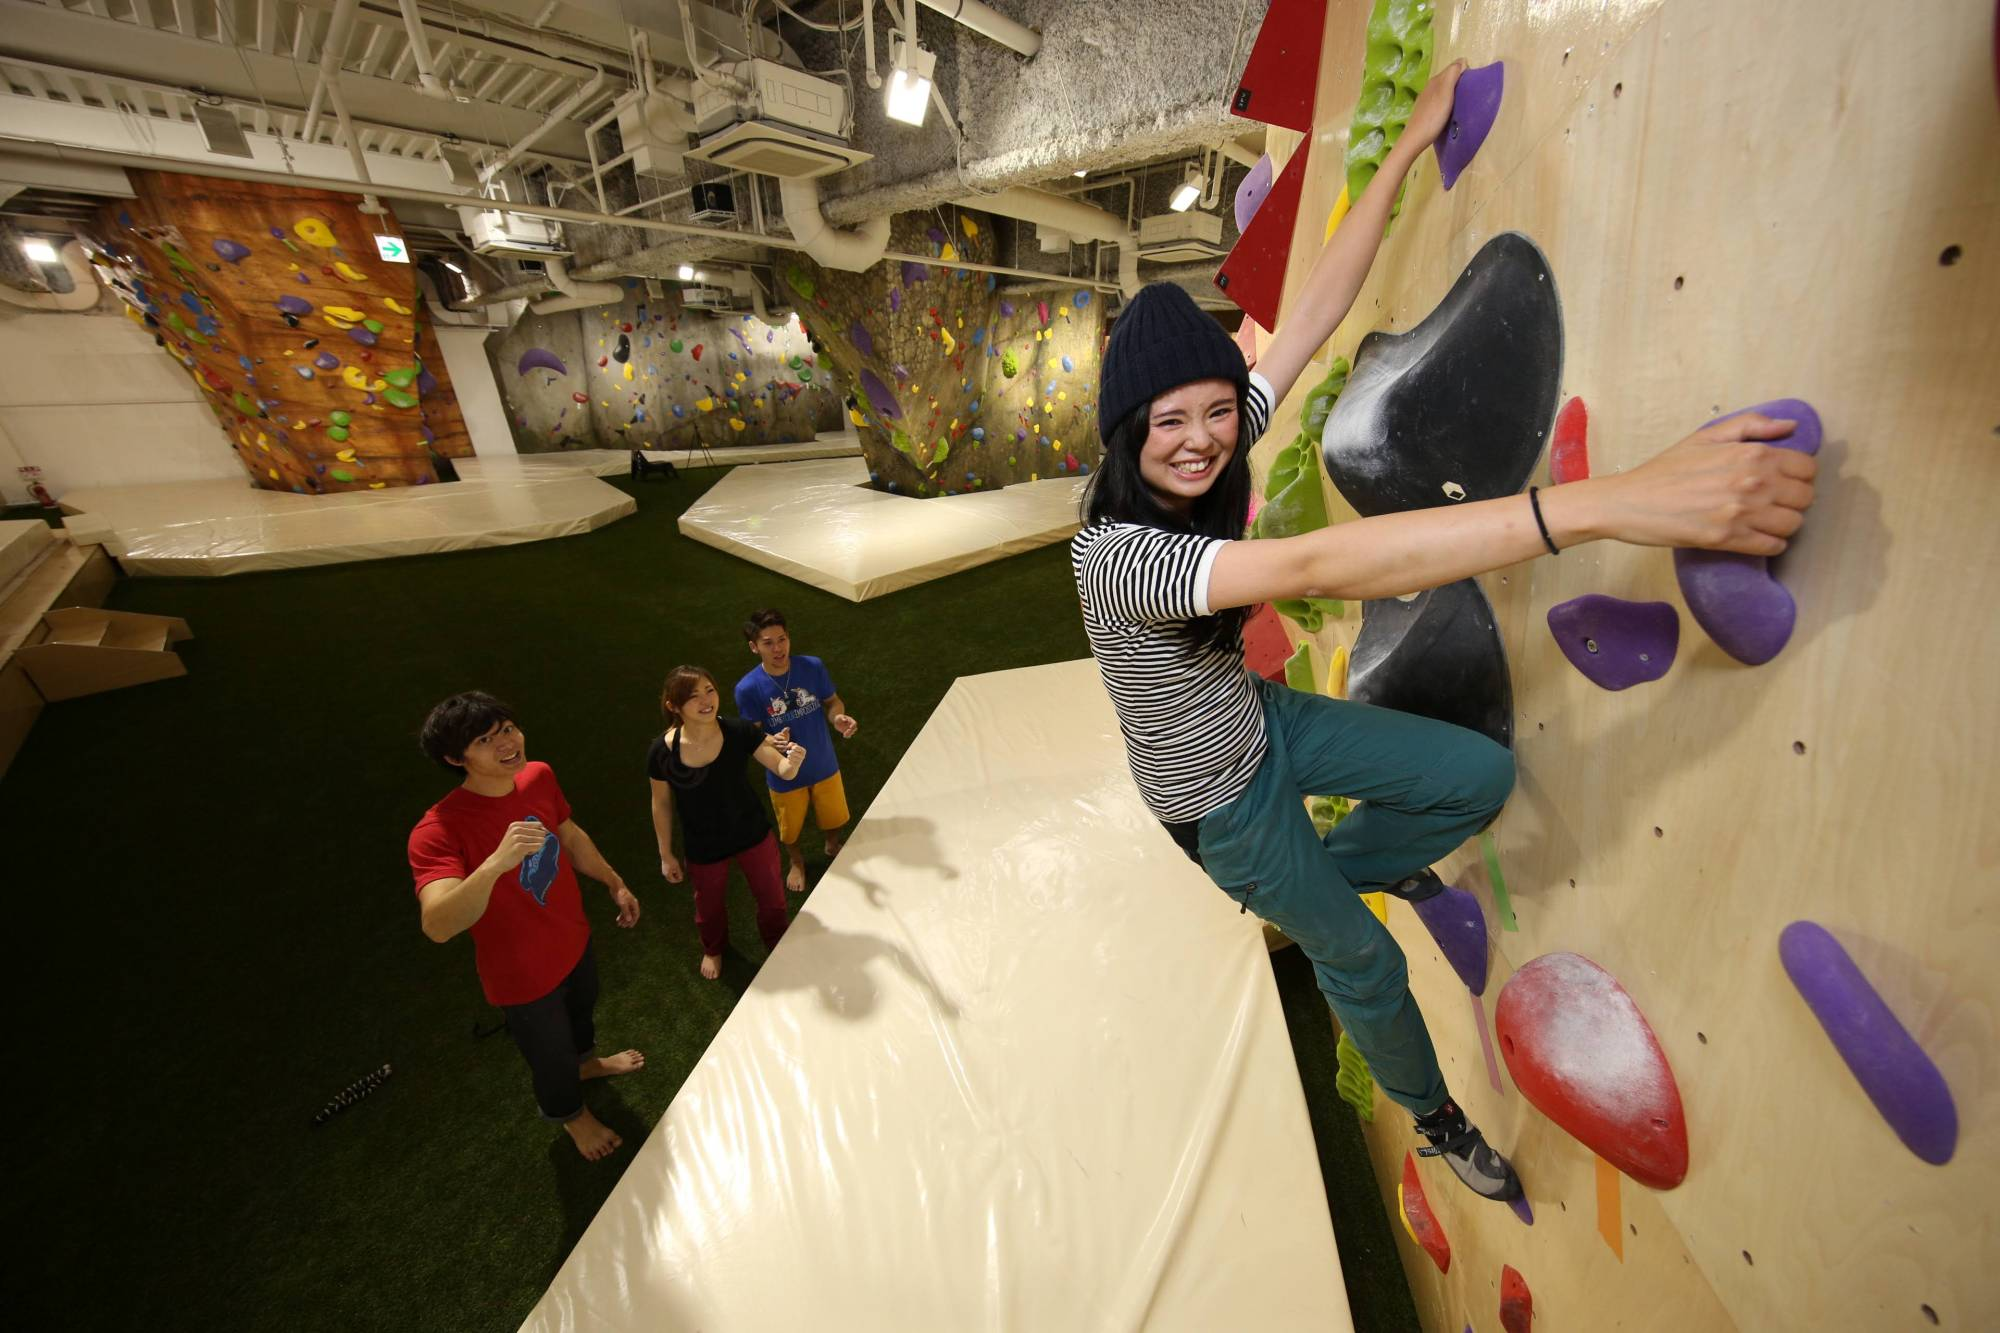 A climber scales the bouldering wall at B-Pump Ogikubo climbing gym.   COURTESY OF FRONTIER SPIRITS